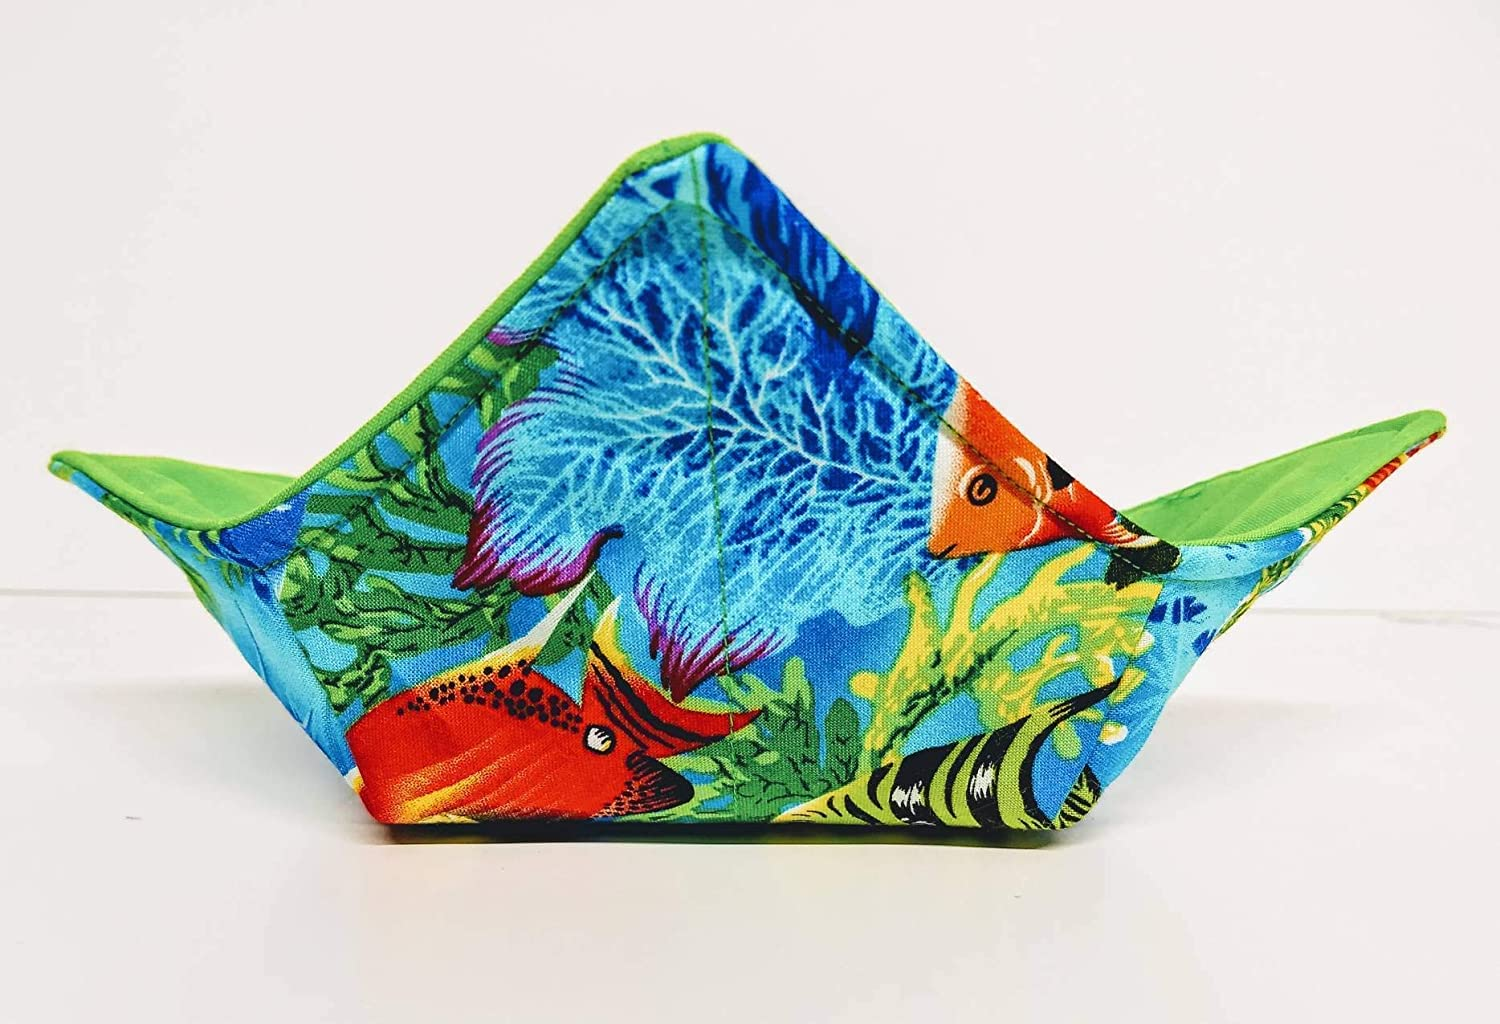 Popular brand Tropical Fish and Luxury goods Reef microwavable cozy soup bowl